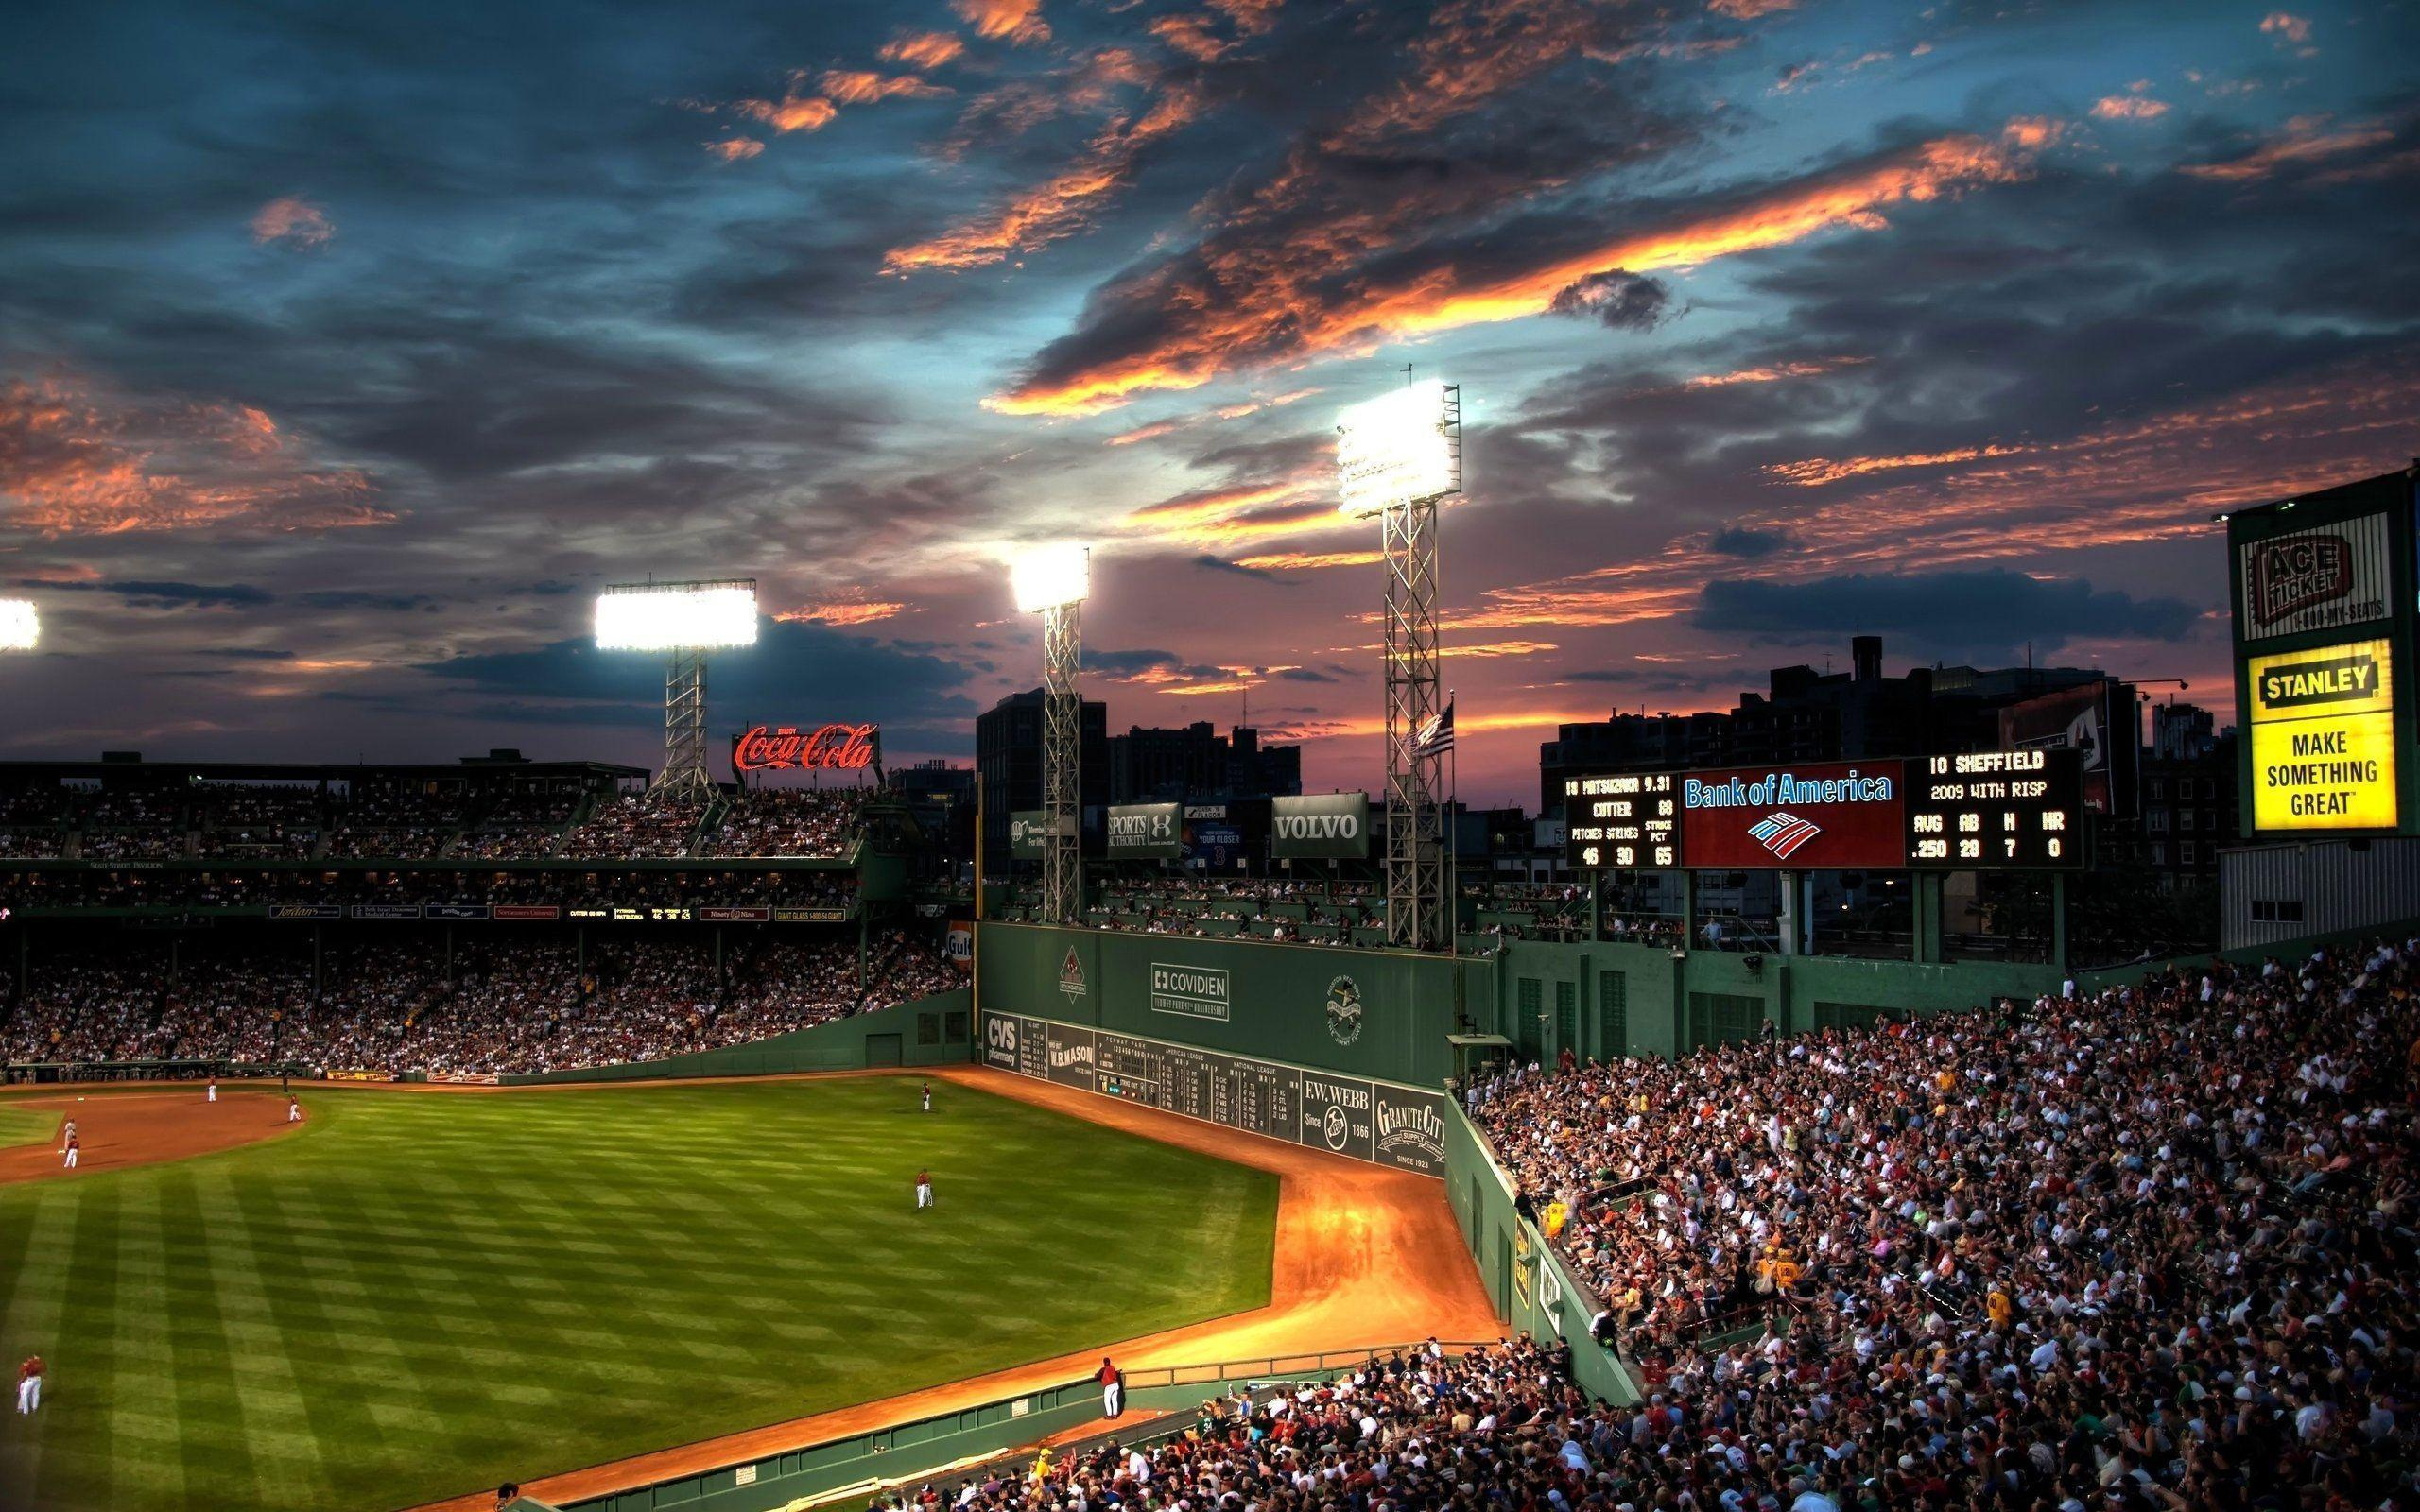 Boston Fenway Park Computer Wallpapers, Desktop Backgrounds